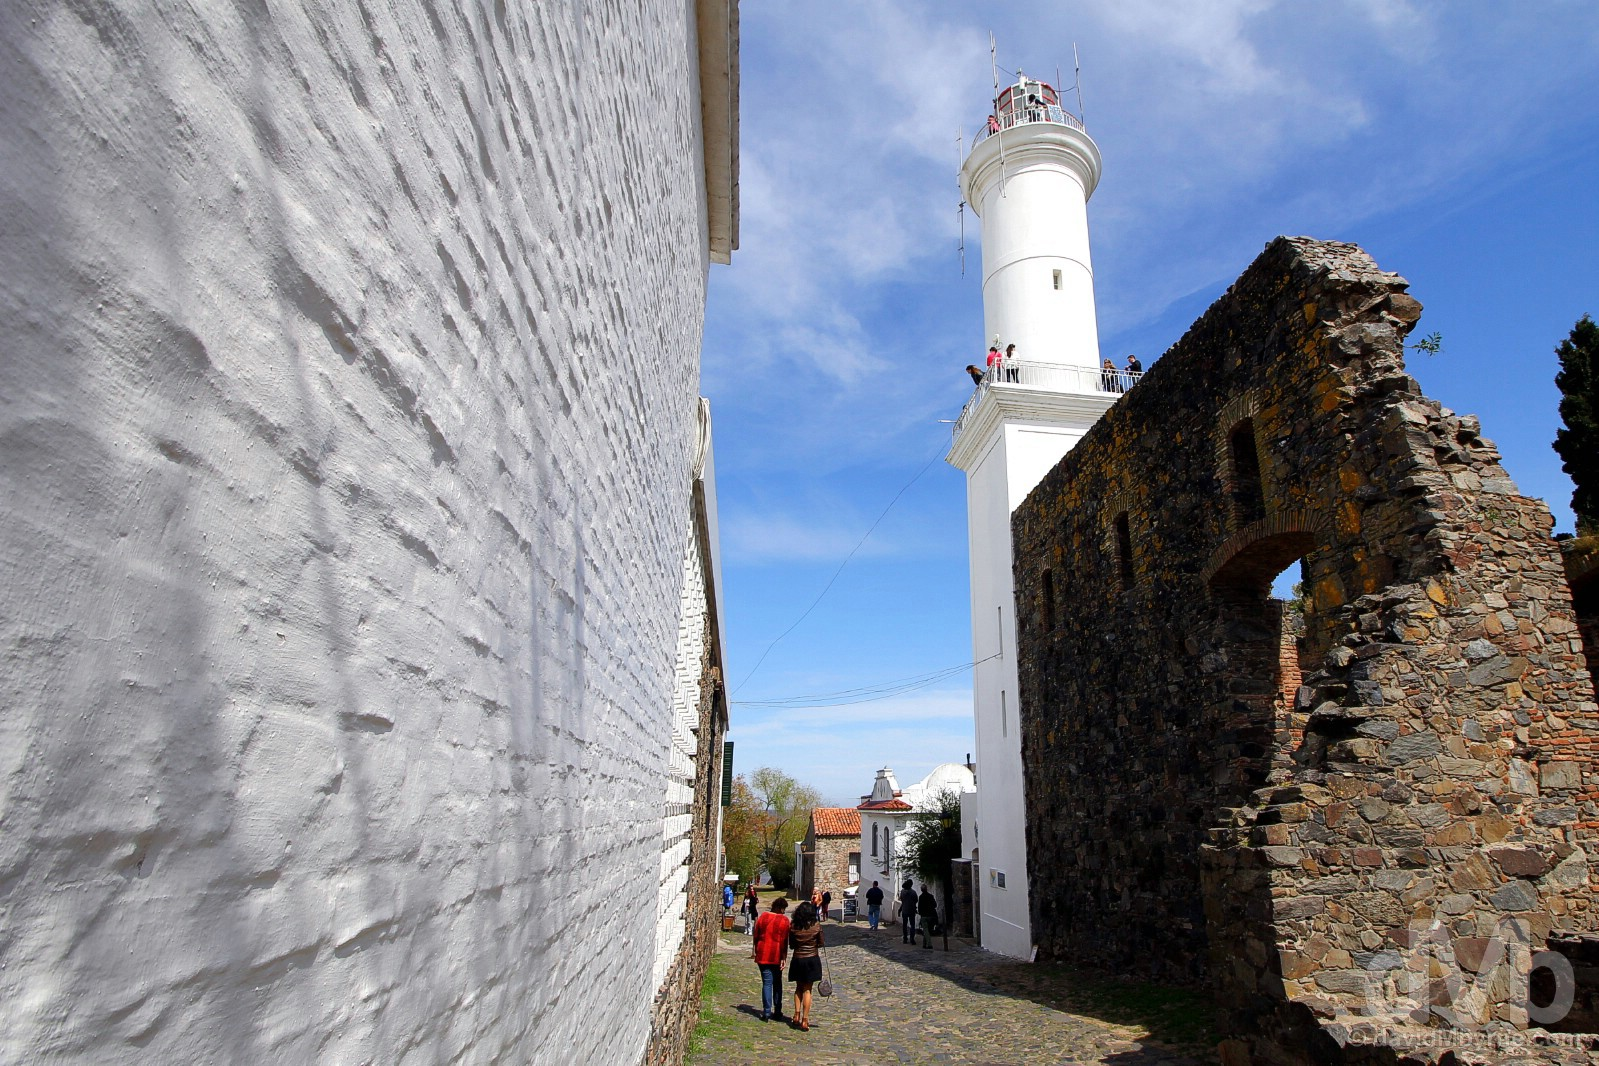 Colonia del Sacramento Lighthouse as seen from de San Francisco, Colonia del Sacramento, Uruguay. September 20, 2015.